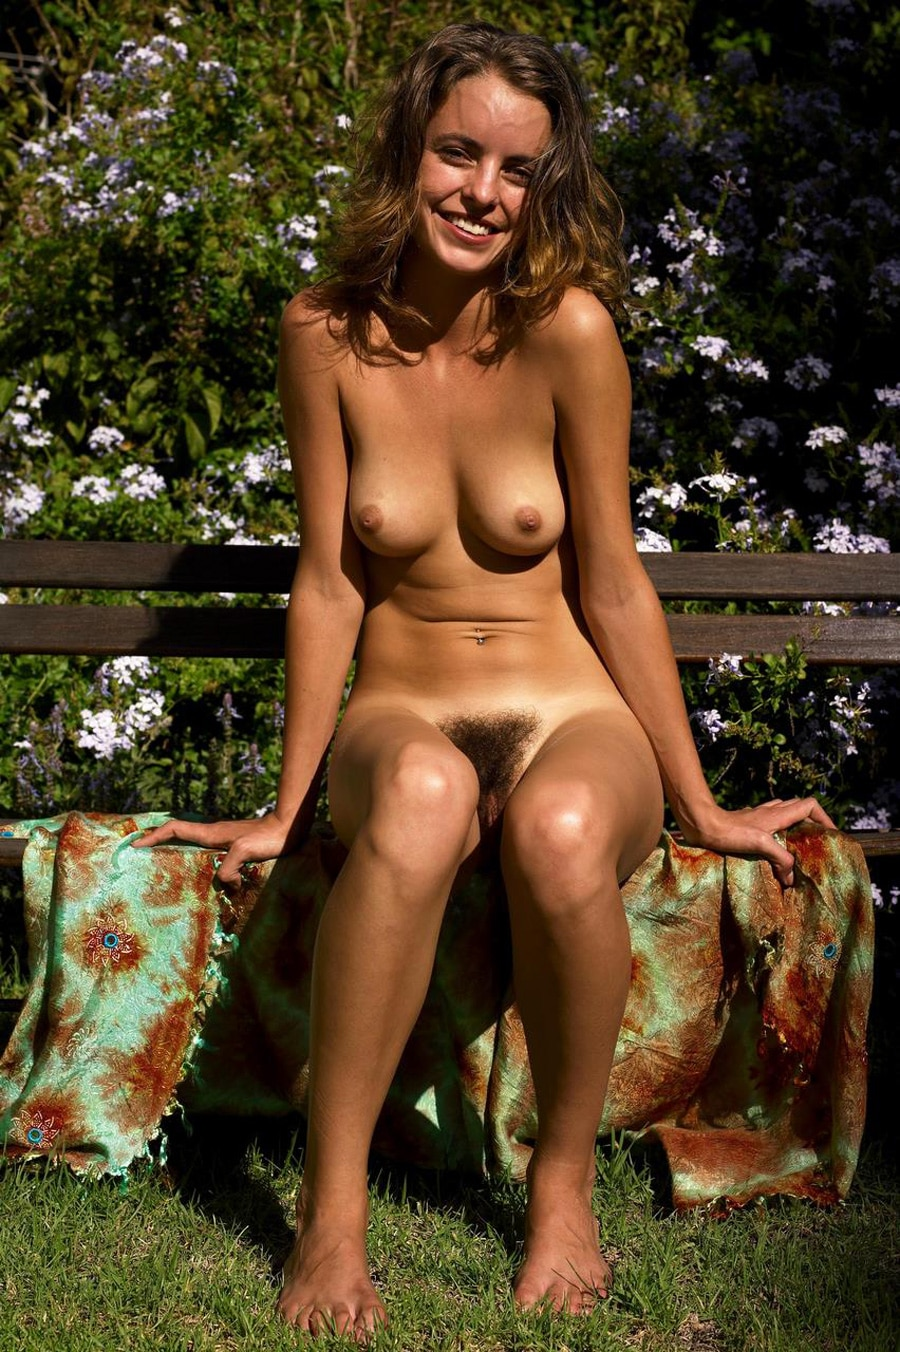 Farm girl calendar nude logically This